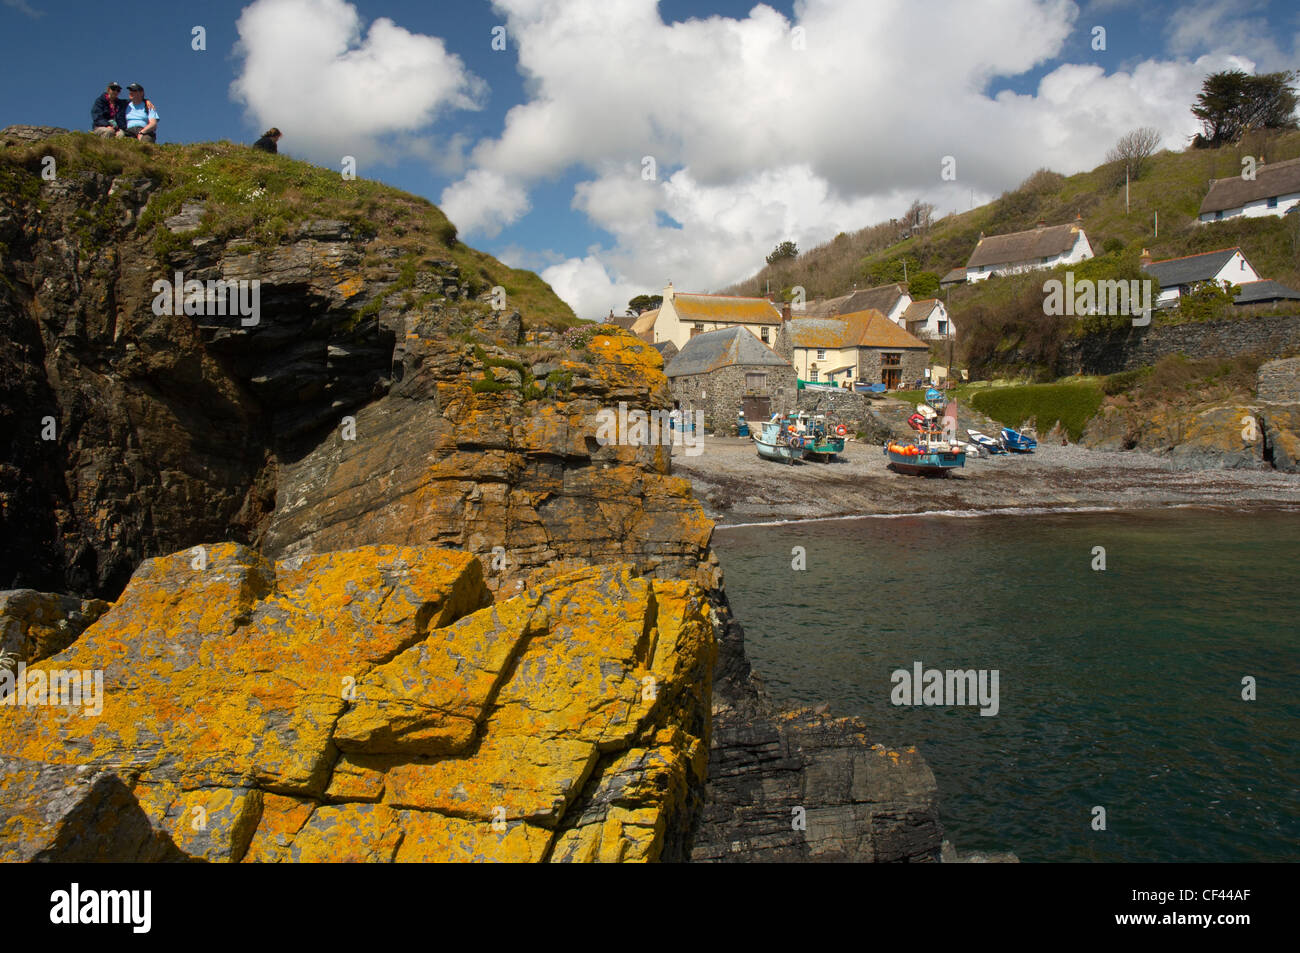 Fishing trawlers on the beach at the traditional Cornish fishing harbour of Cadgwith Cove. - Stock Image